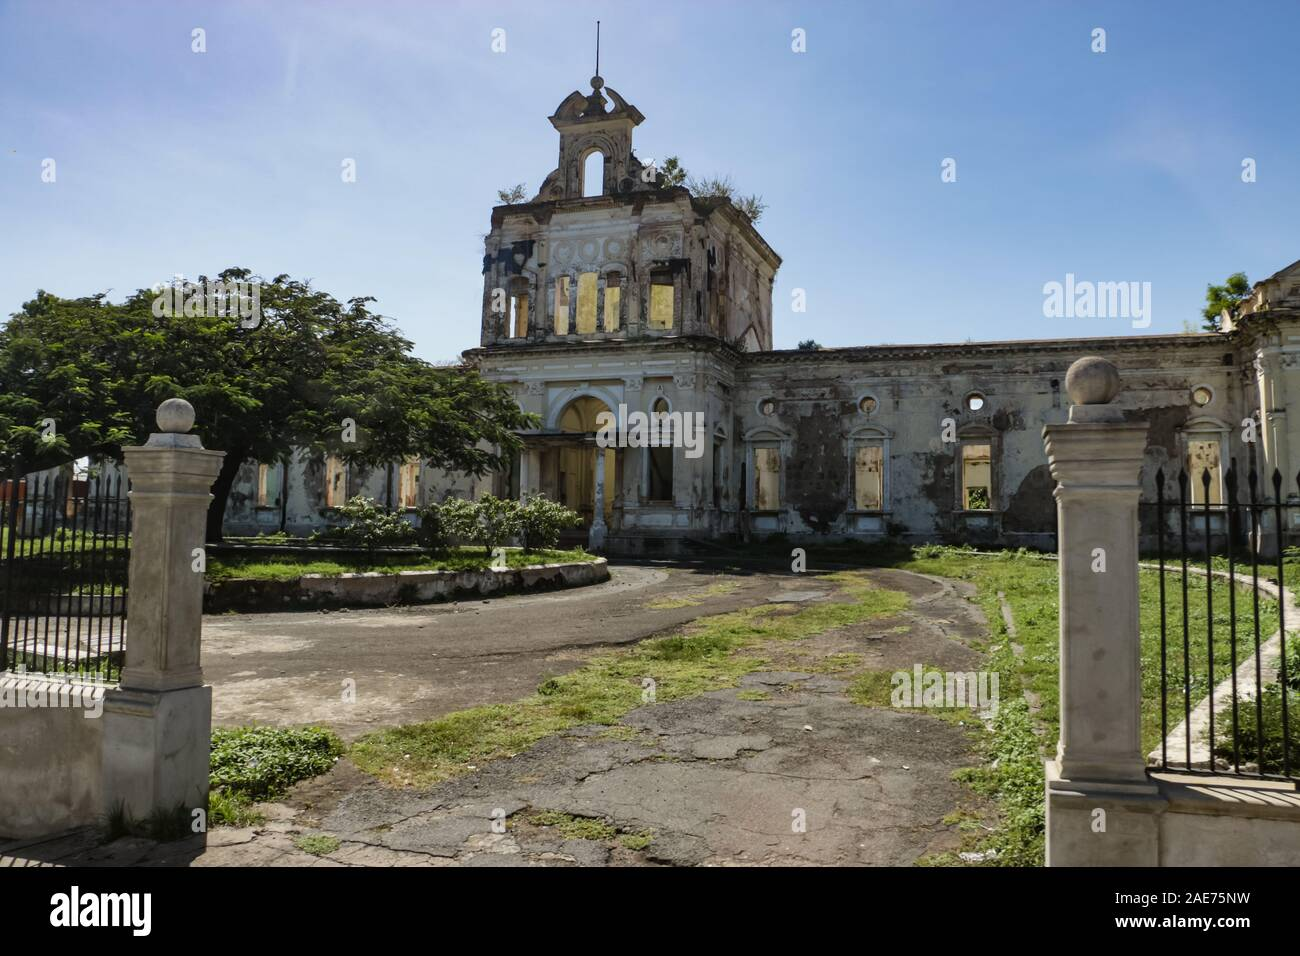 Abandoned Hospital Exterior High Resolution Stock Photography And Images Alamy